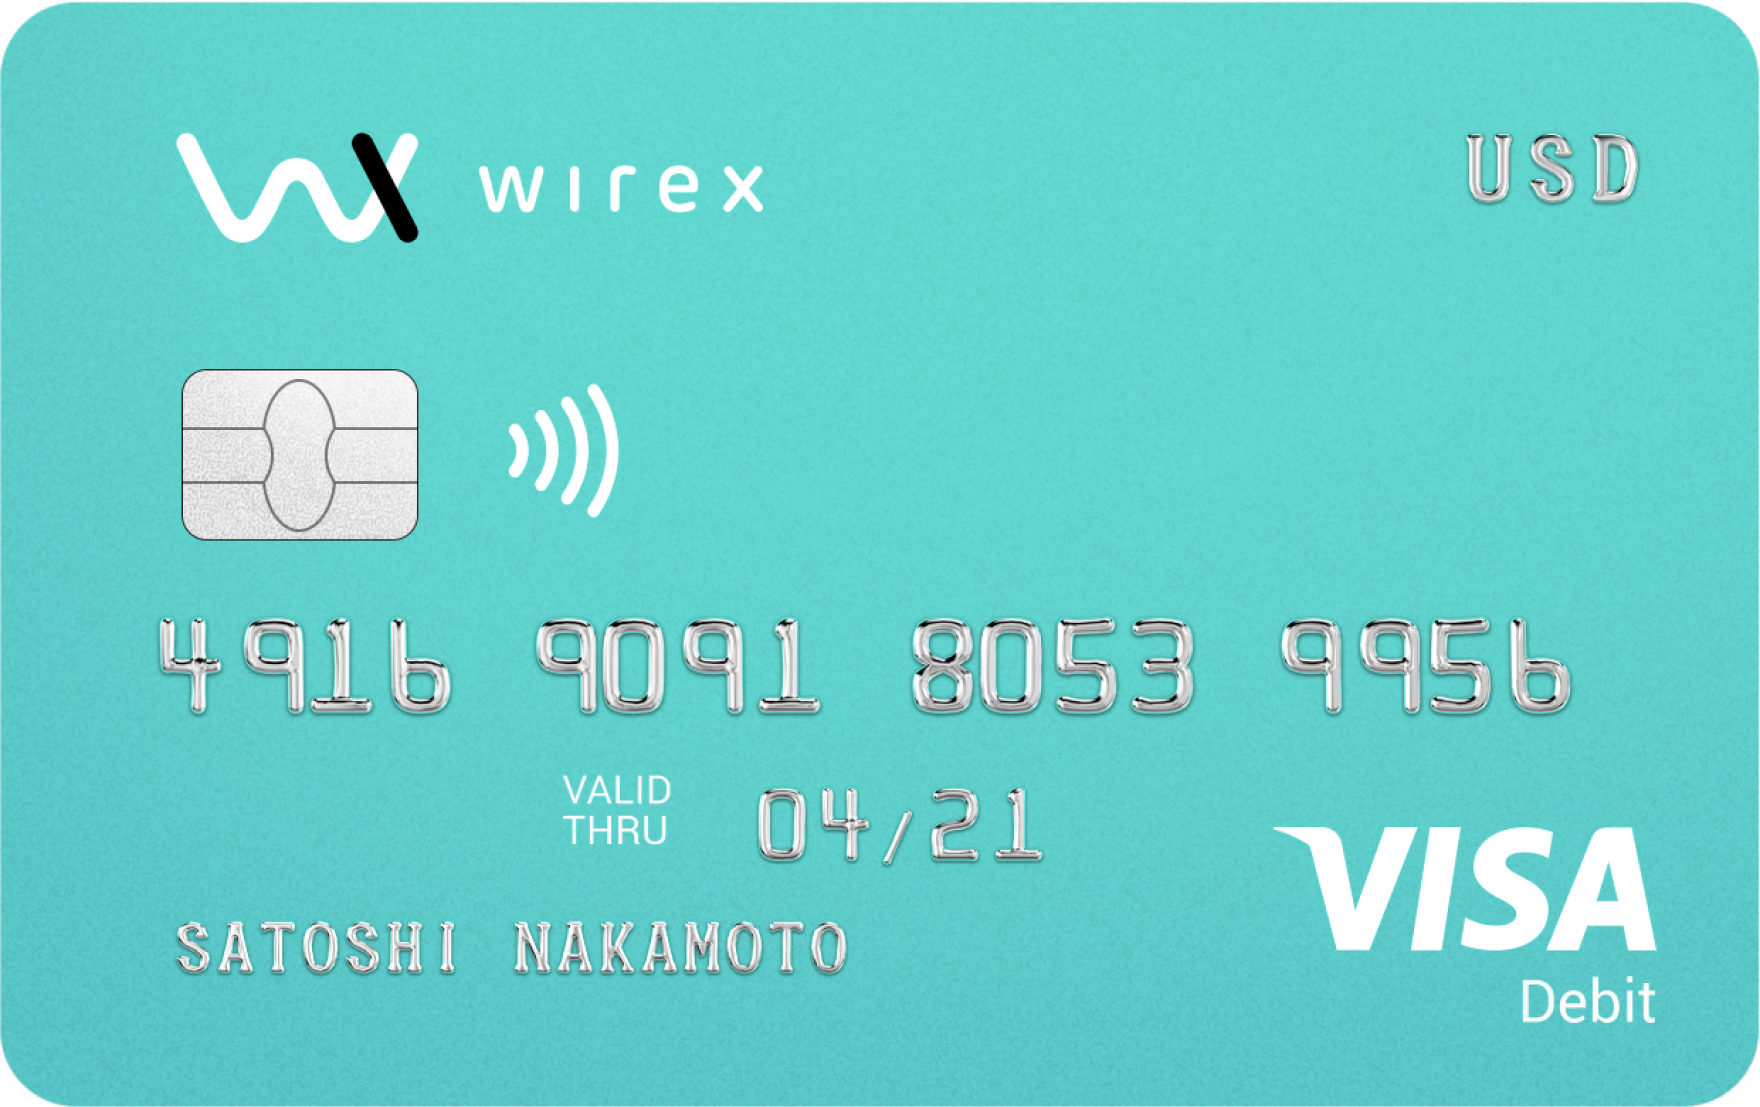 carta visa wirex